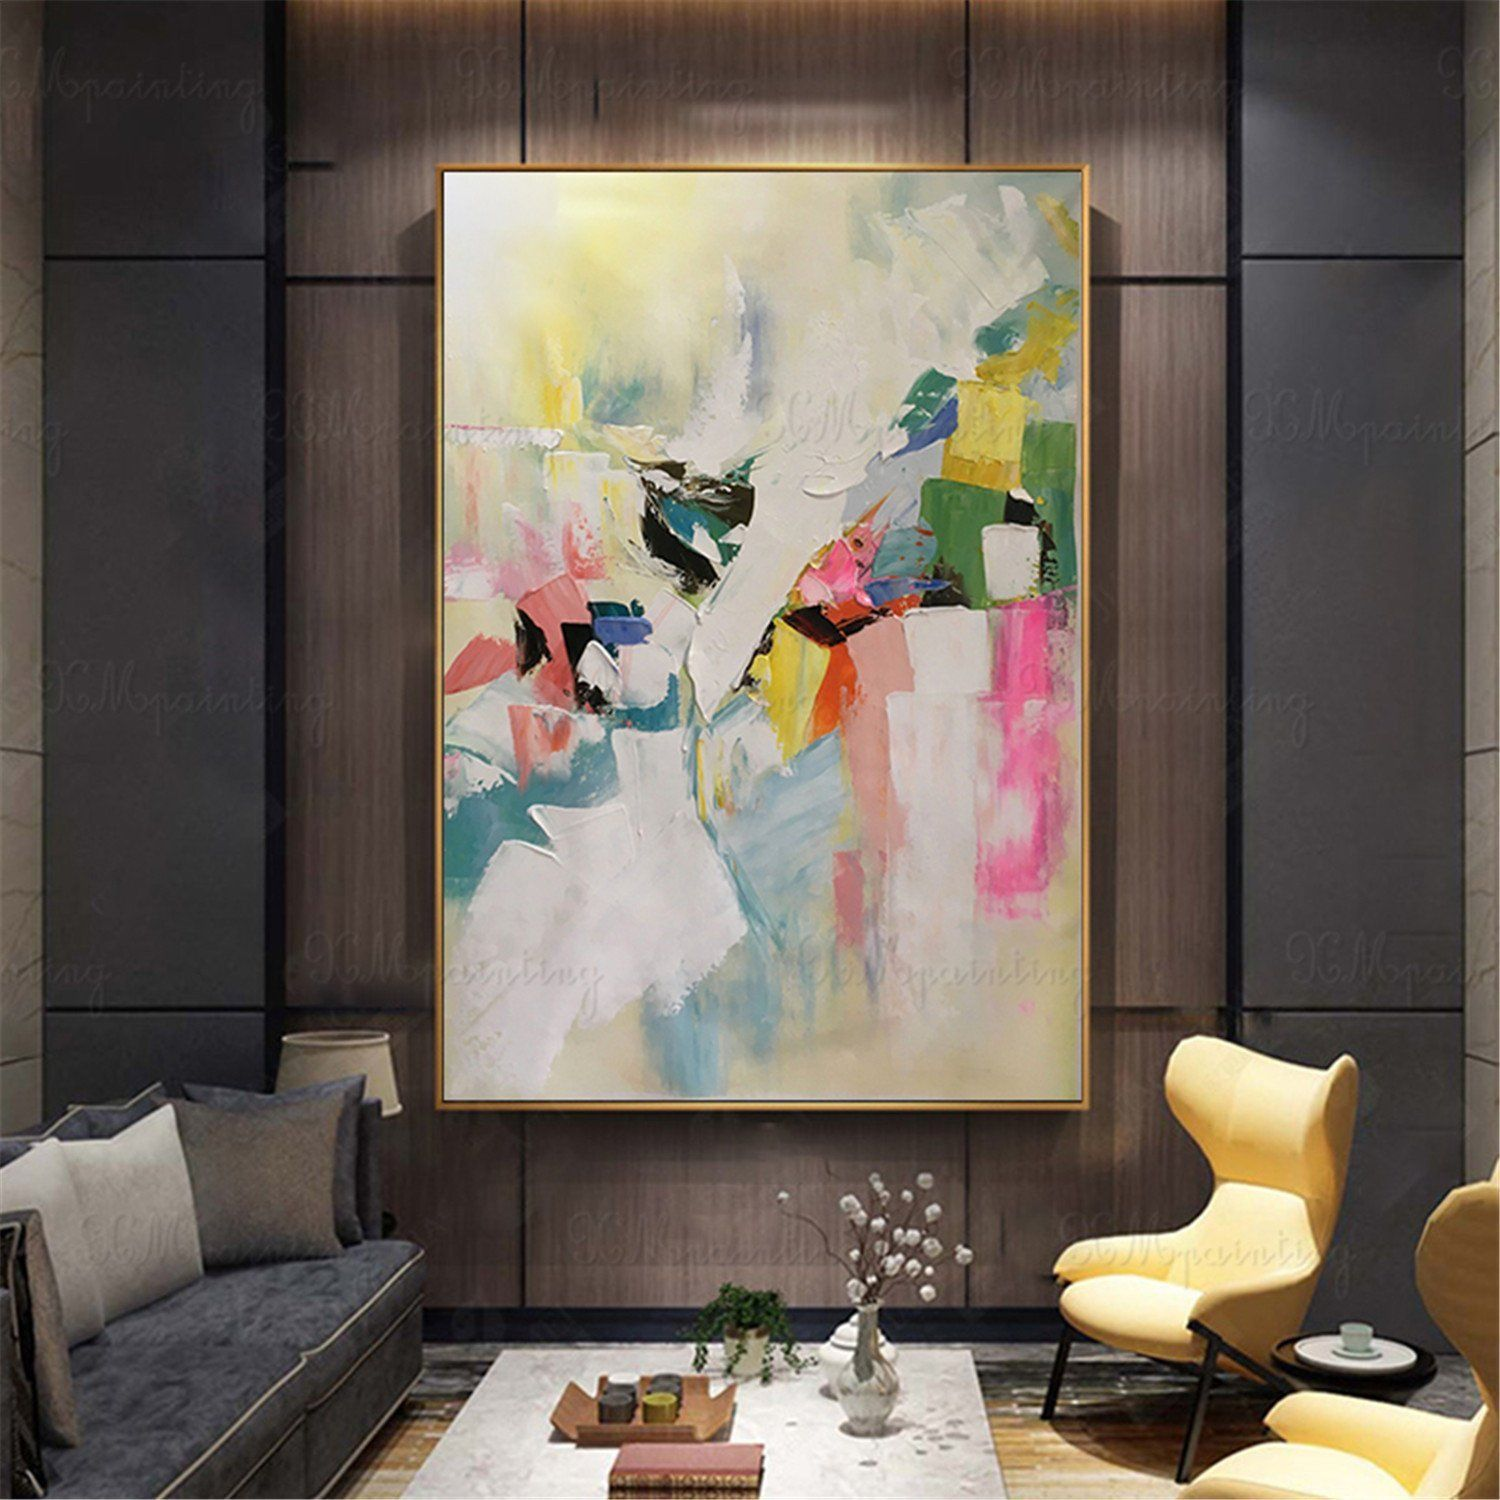 Abstract Painting Canvas Art Wall Art Pictures For Living Room Etsy Canvas Oil Painting Abstract Abstract Art Painting Abstract Canvas Painting #wall #art #paintings #for #living #room